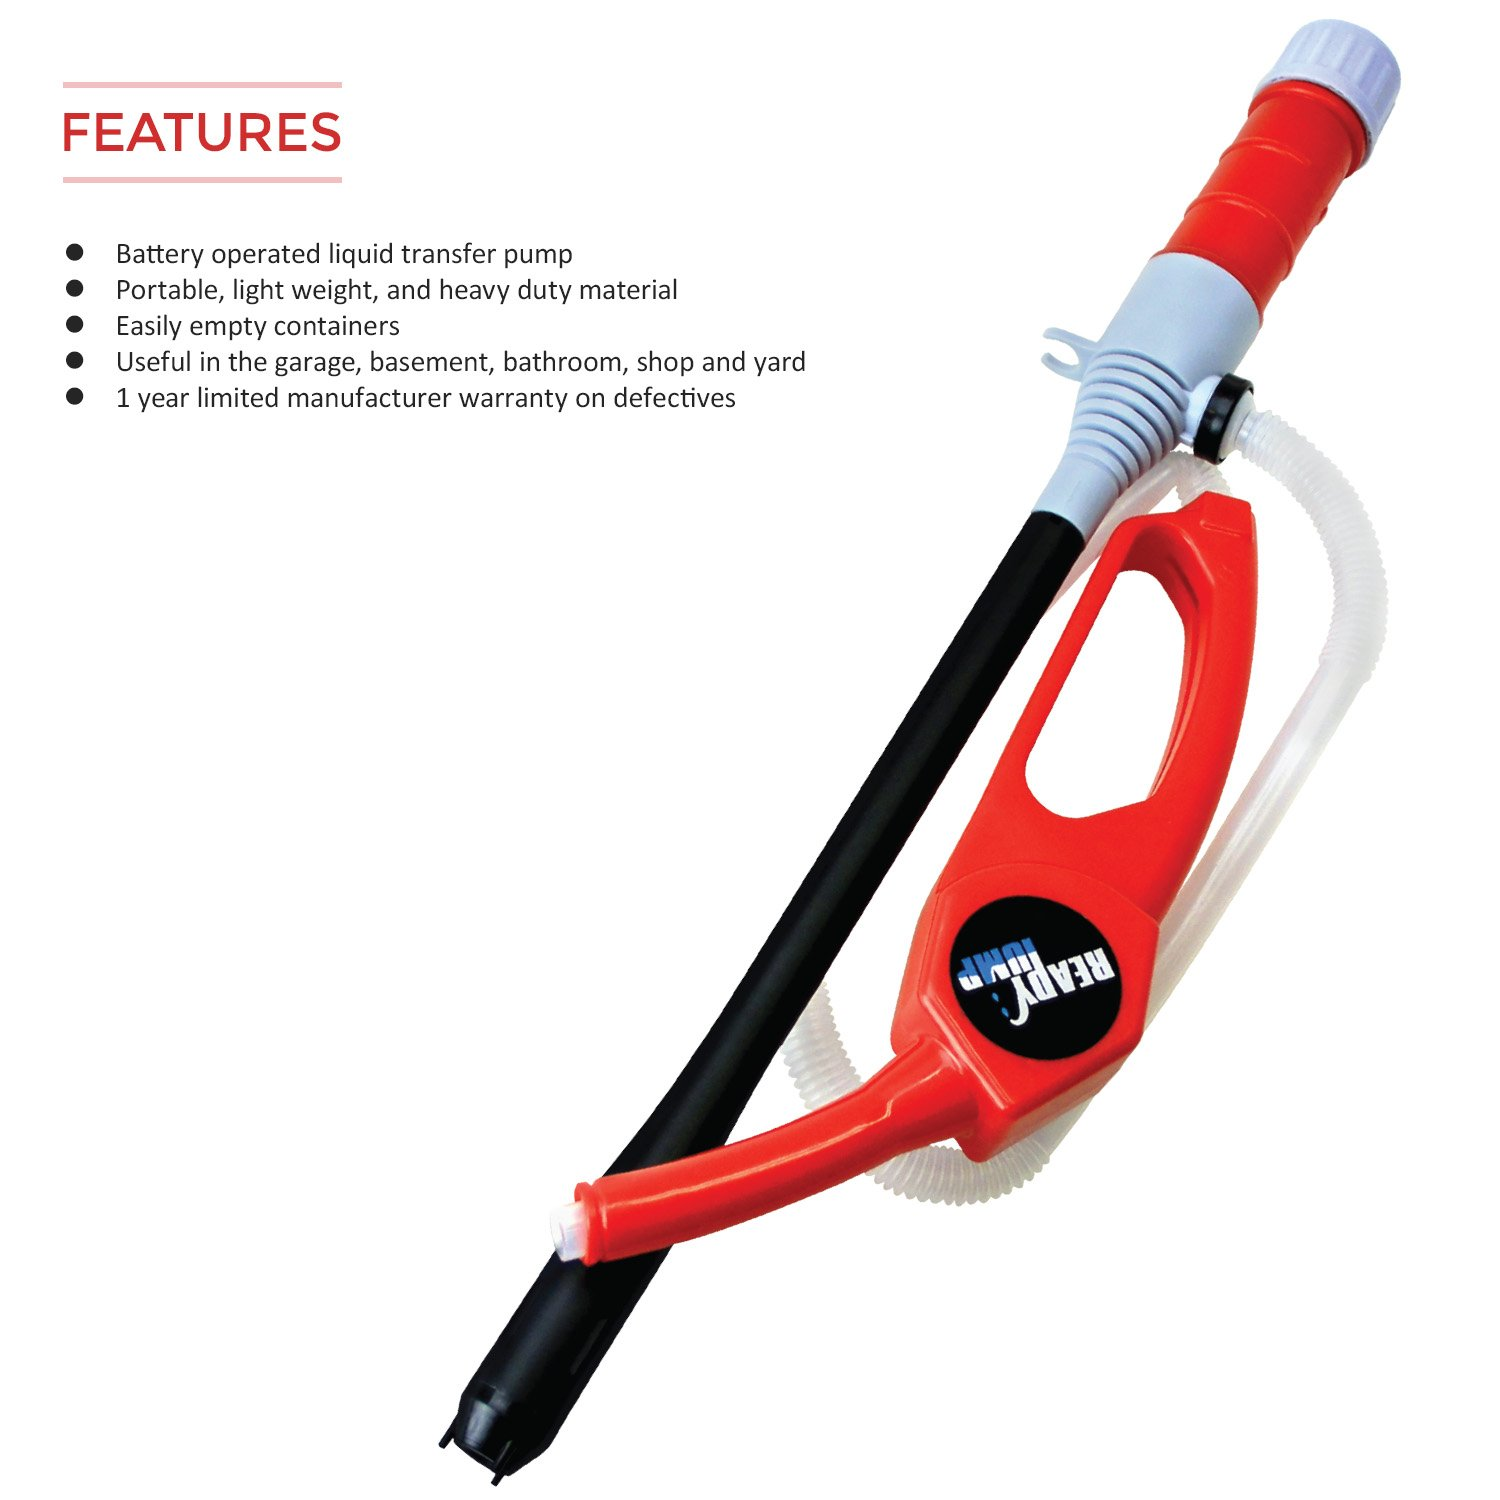 TERA PUMP 2D Baterry Hand Fuel Pumps with Easy Handle